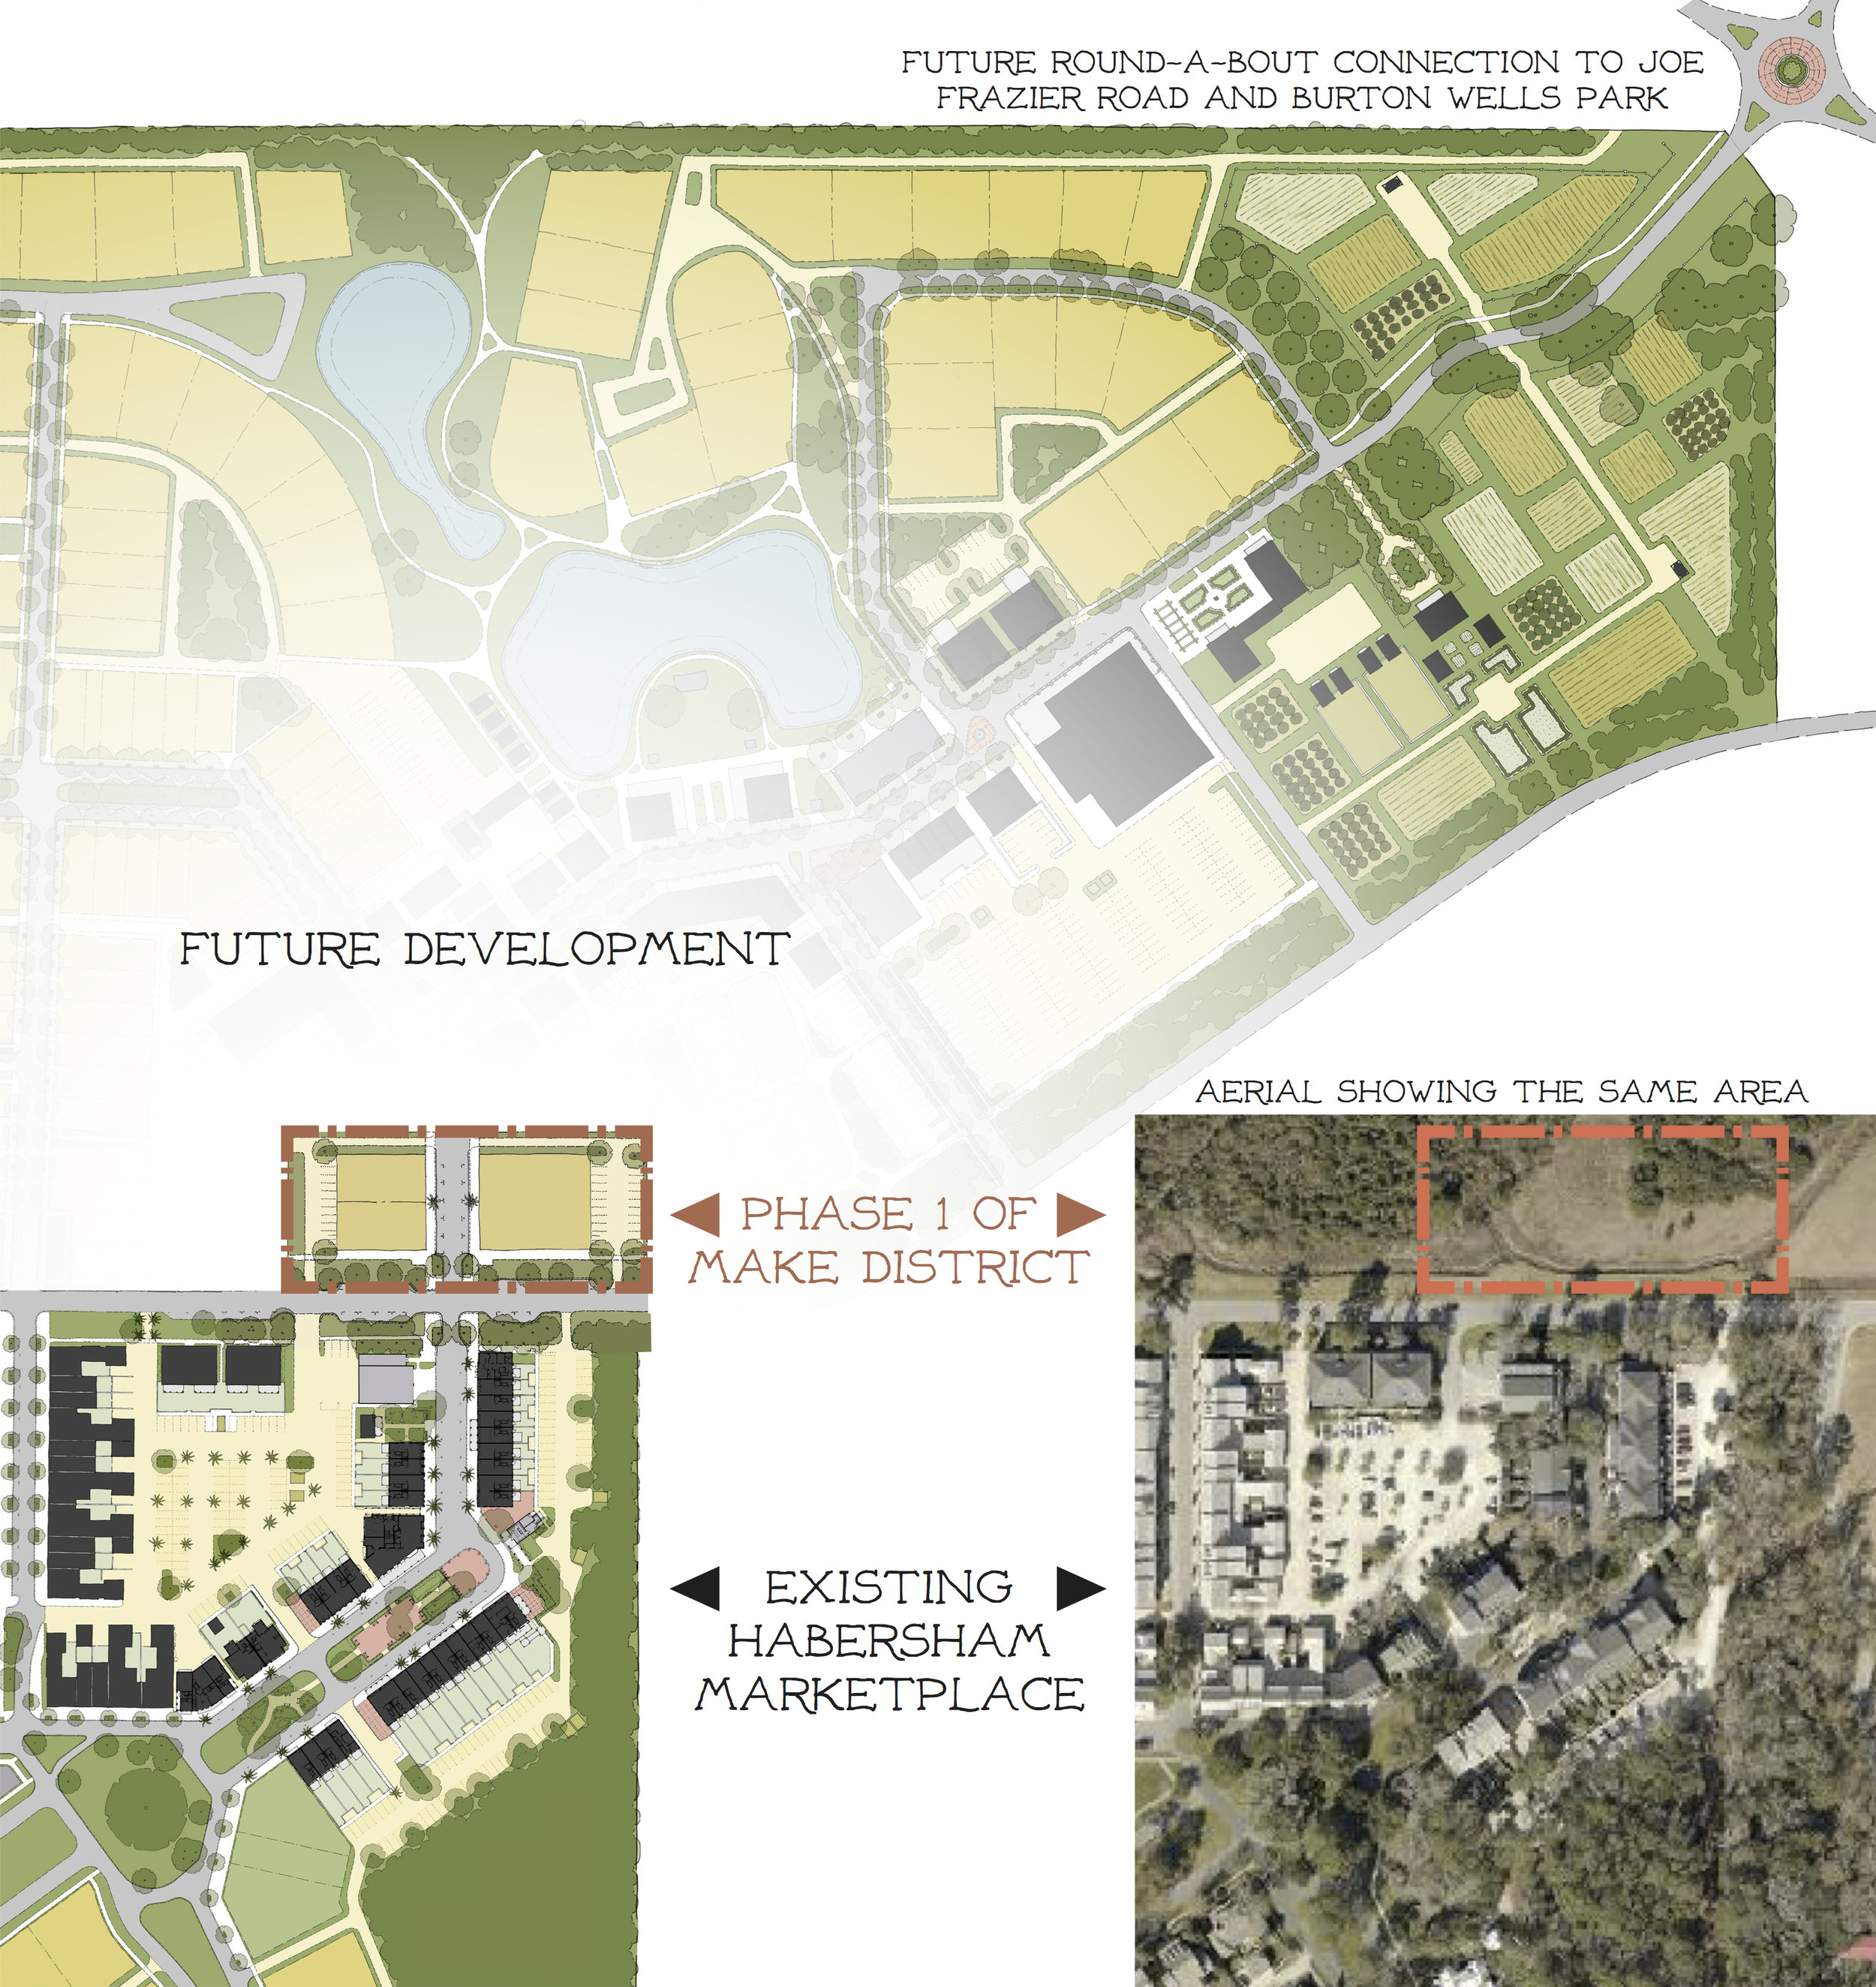 Rendering of flagship structure in the M.A.K.E. extension of the Habersham Marketplace